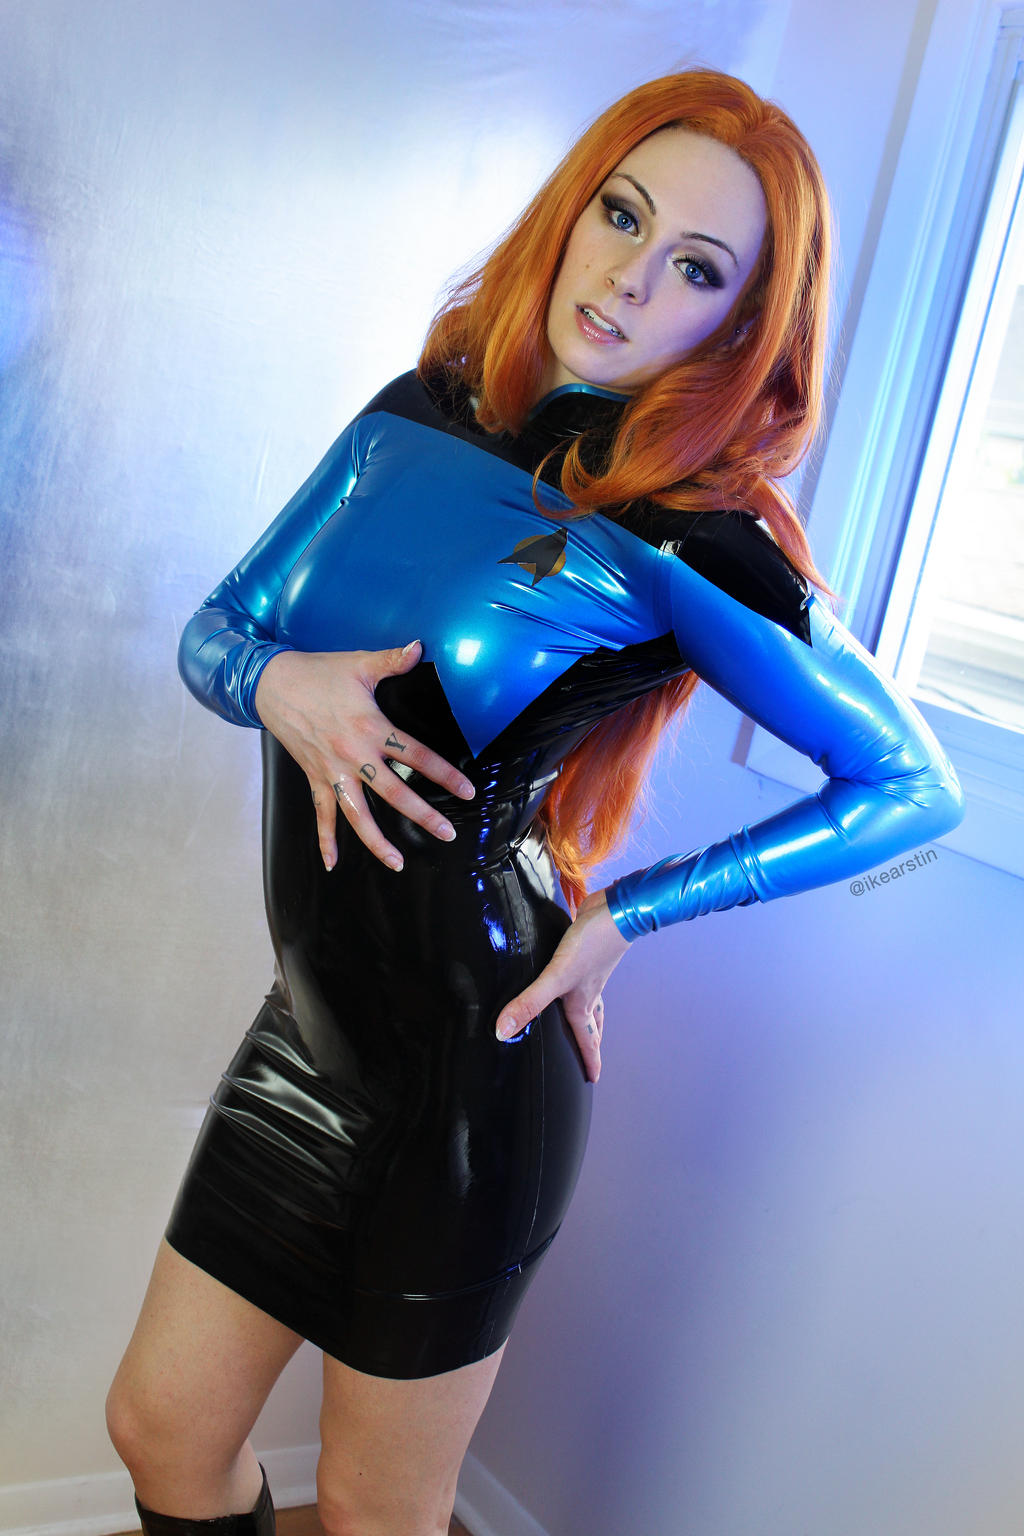 Star trek cosplay sexy congratulate, this